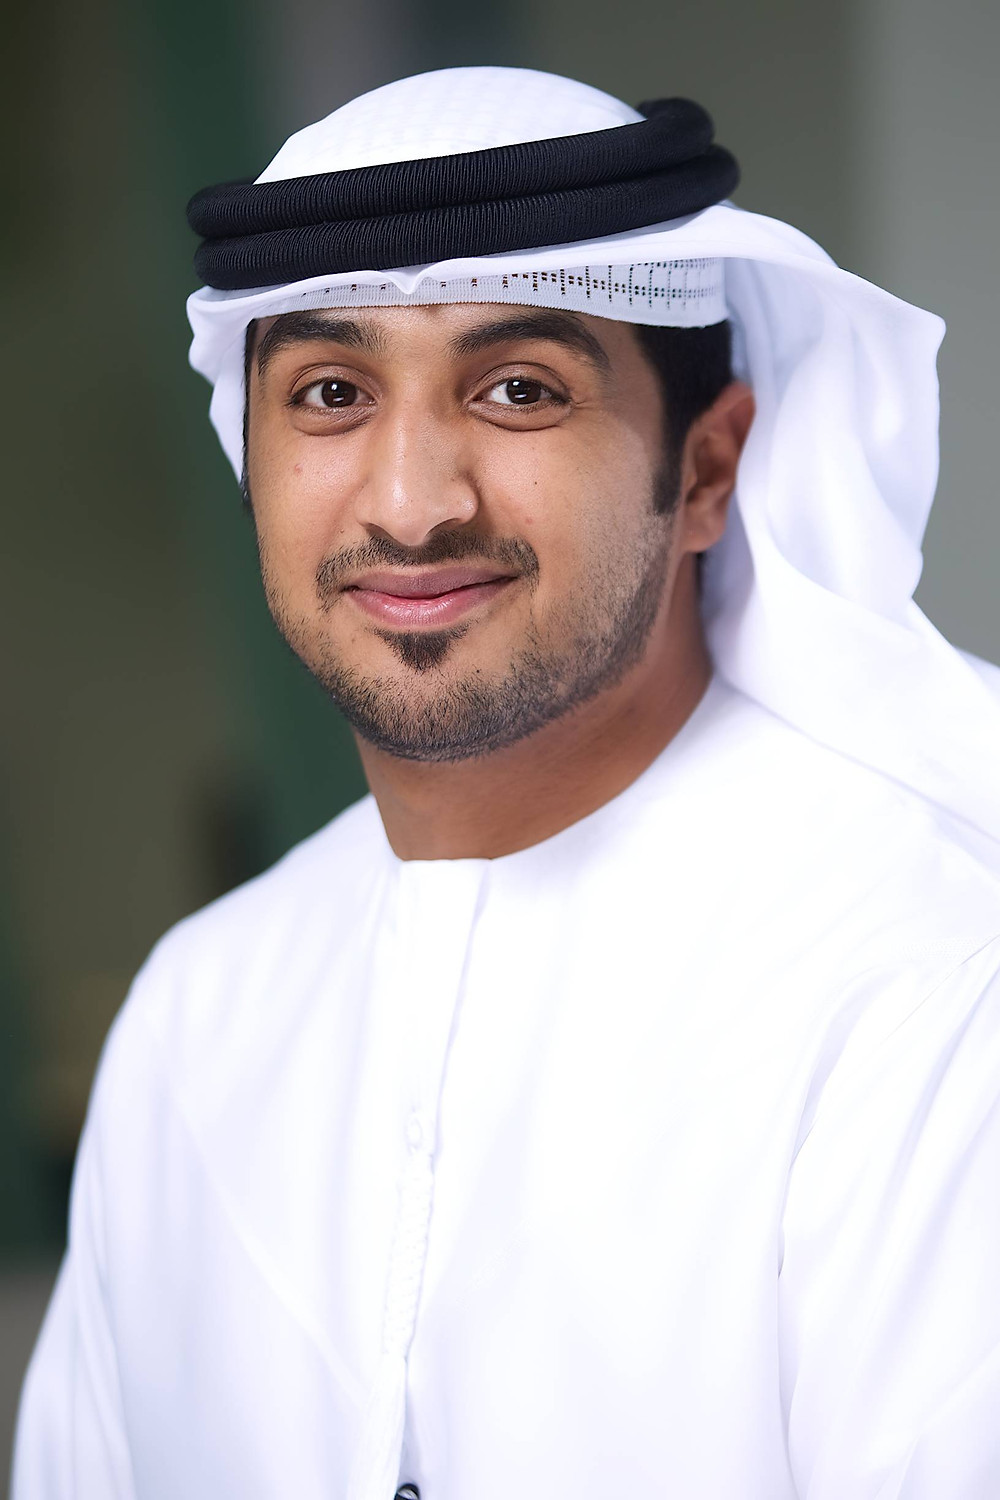 Eisa Al Shamsi, Deputy General Manager of Yahsat Government Solutions